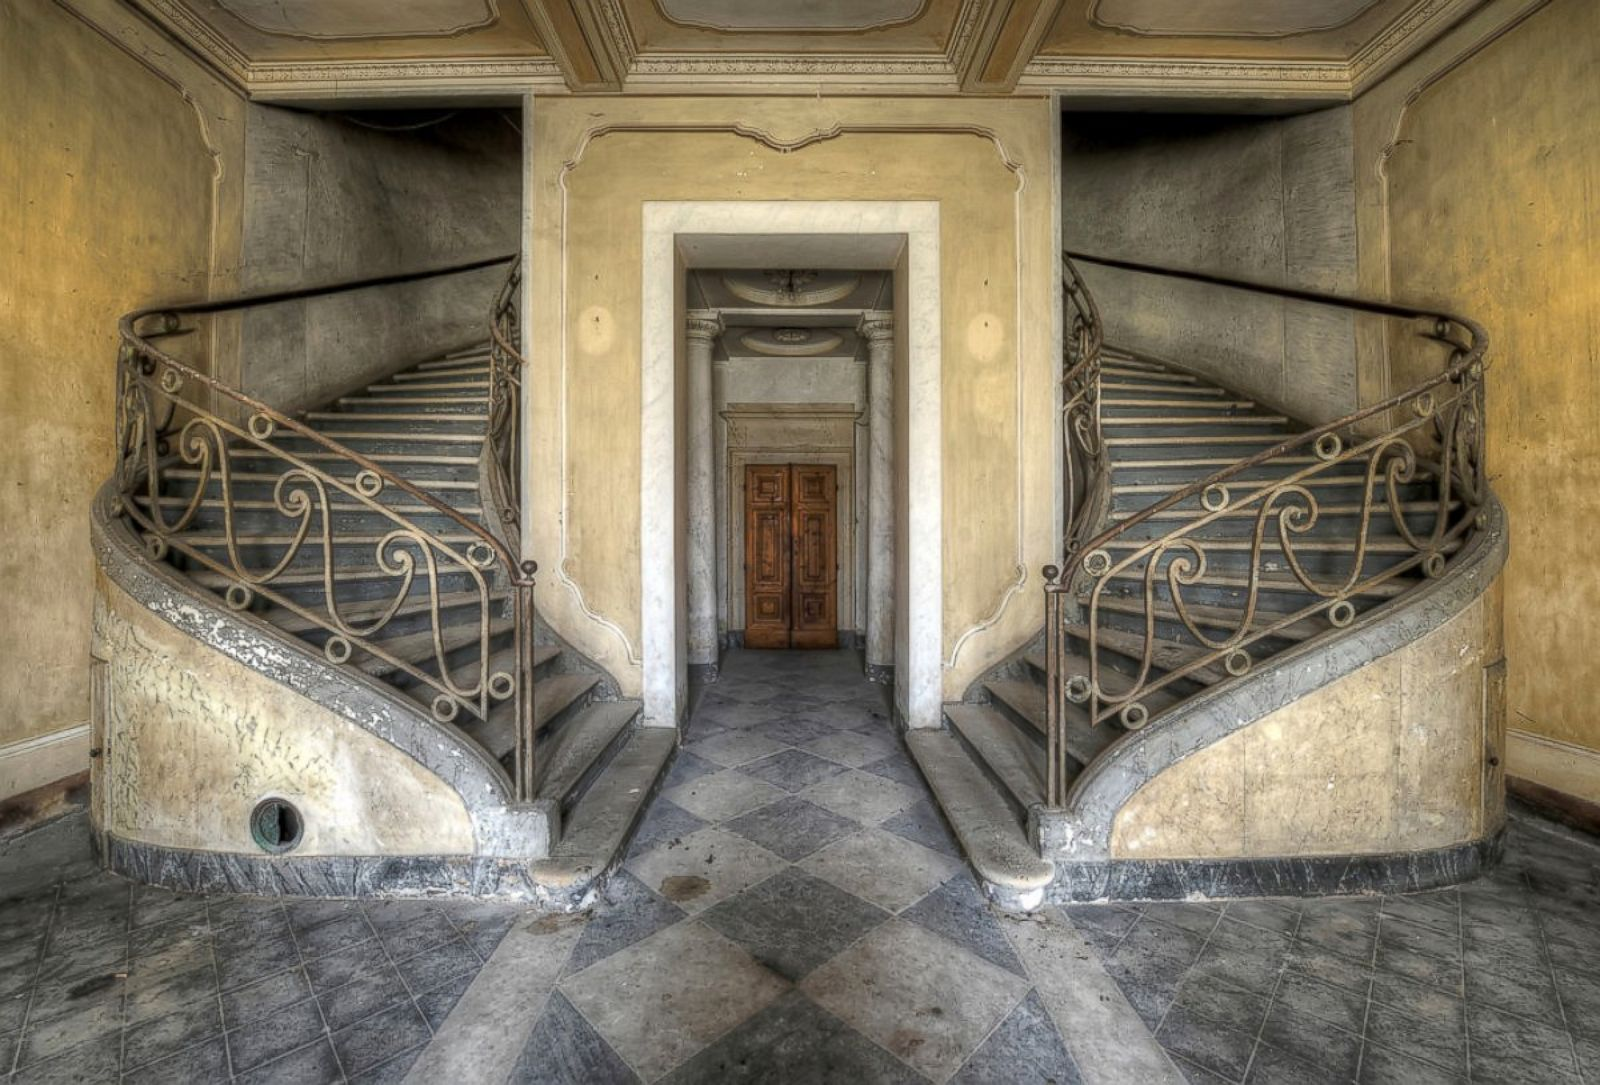 Images of these abandoned places will give you chills for Newspaper wallpaper for sale